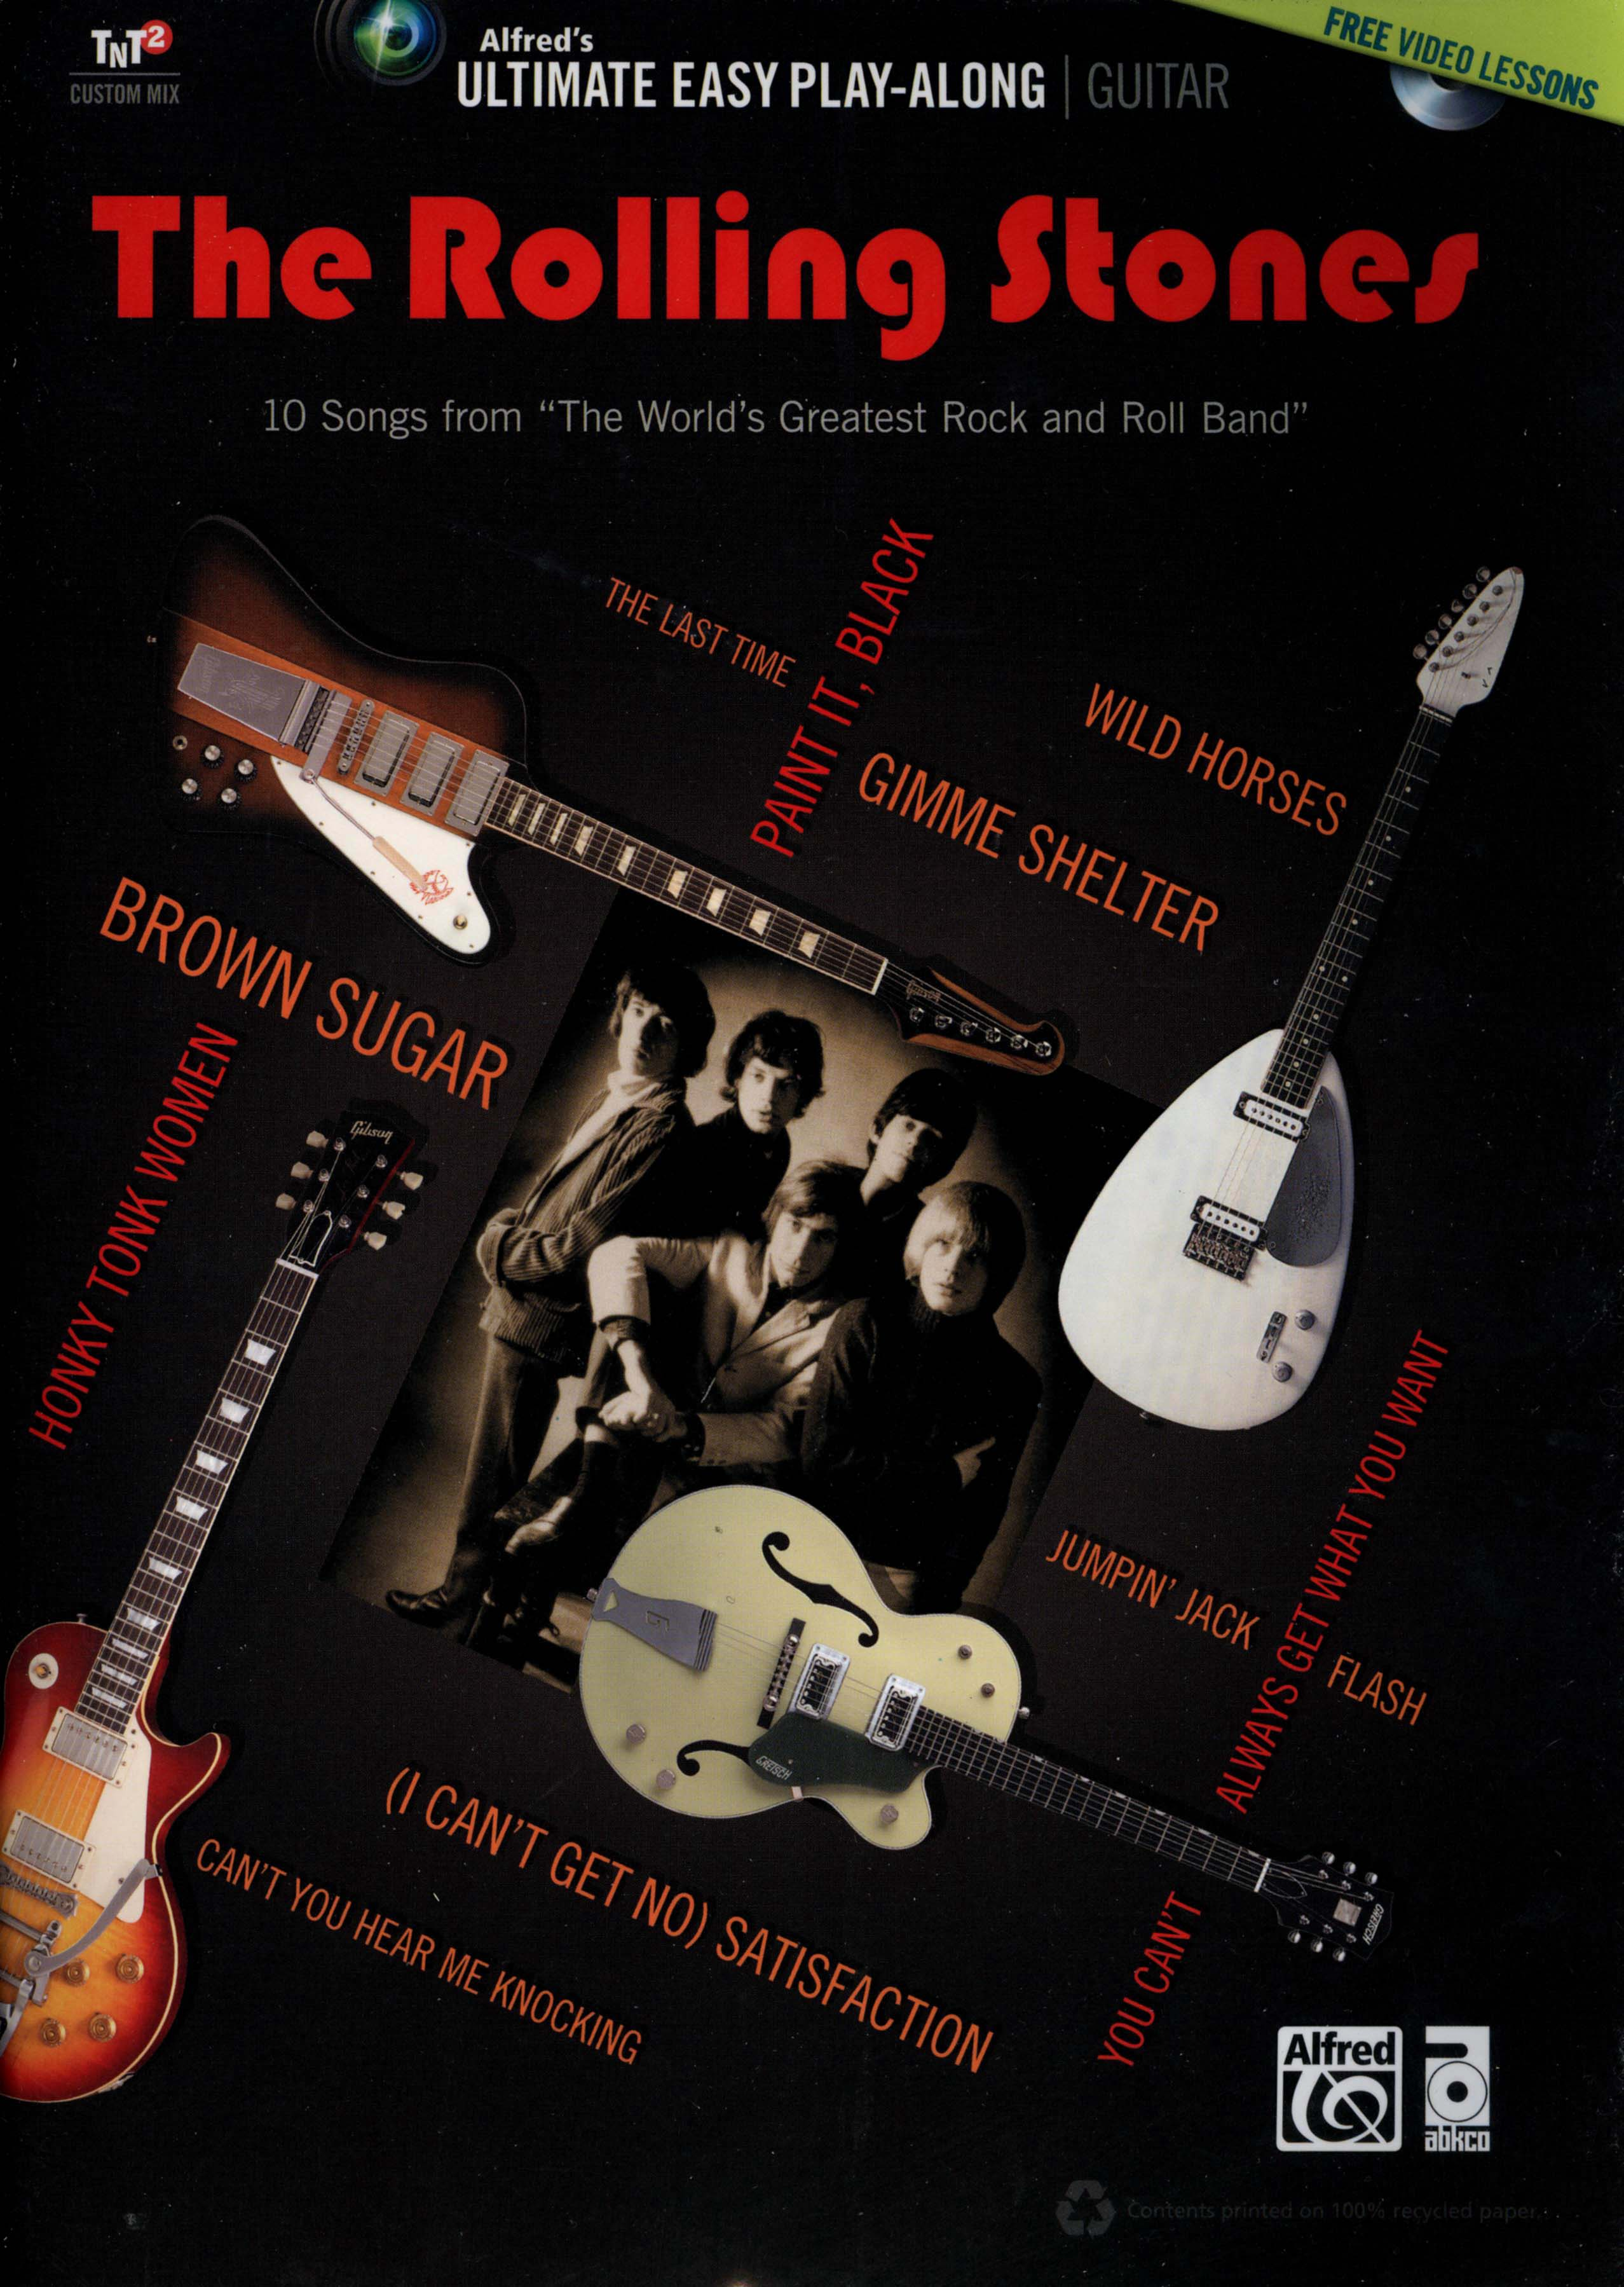 Alfred's Ultimate Easy Play-Along Guitar: The Rolling Stones